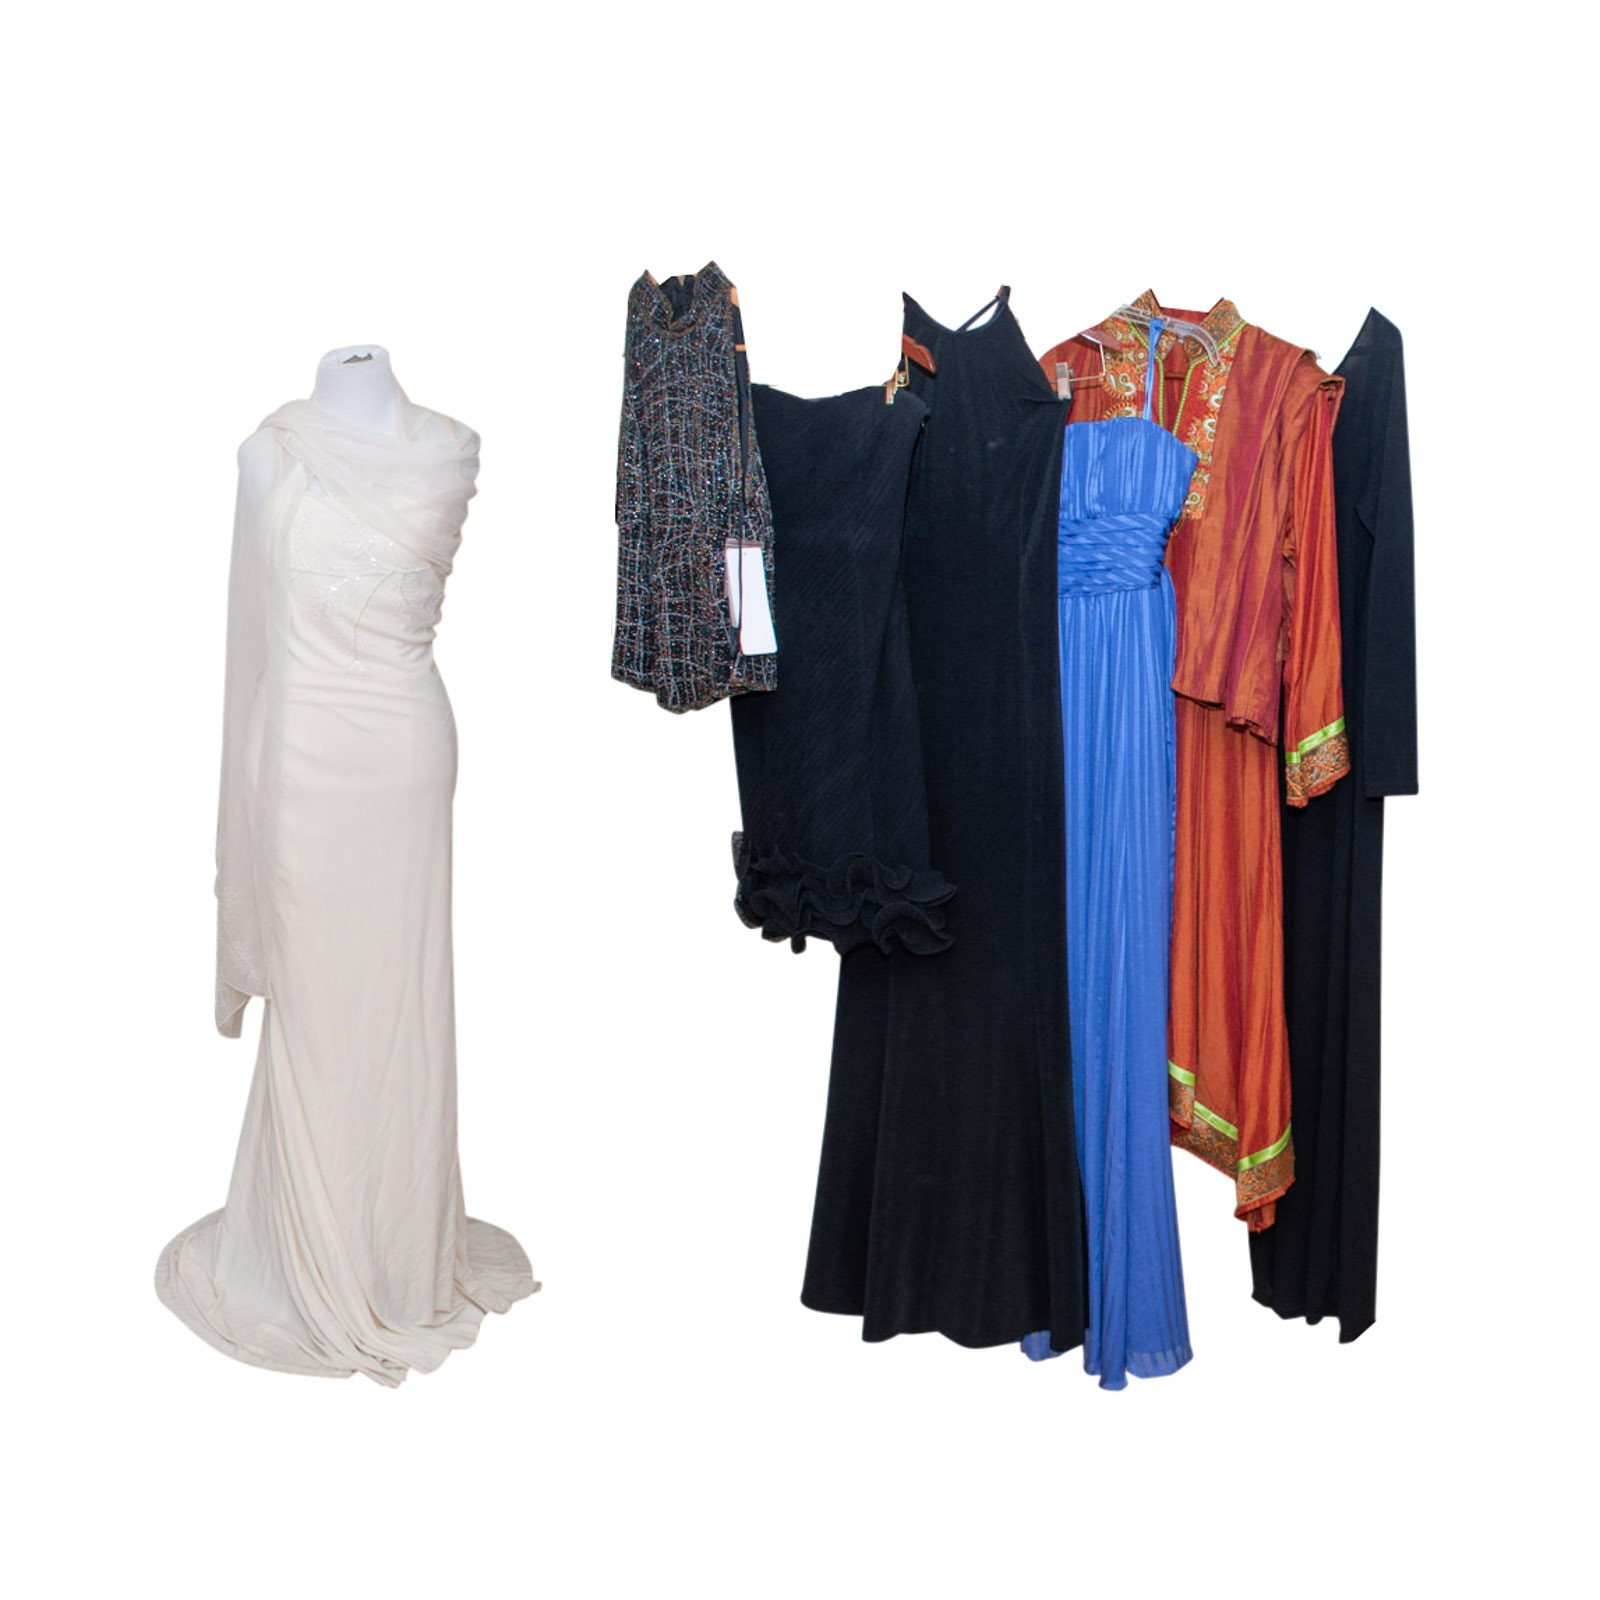 Women's Formal Wear Including Calvin Klein, Papell Boutique and BCBG Maxazria